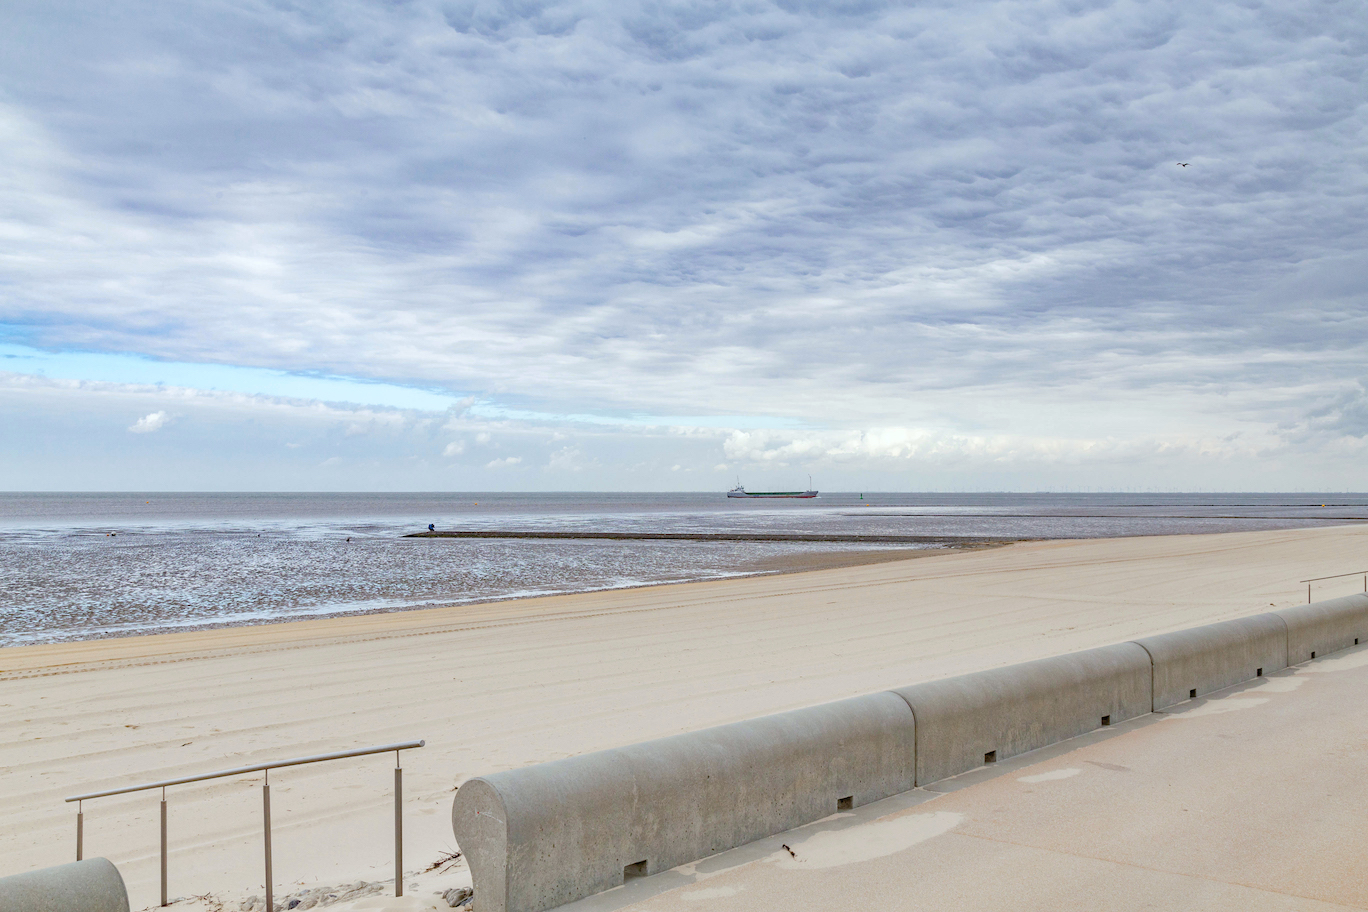 Beach of Cuxhaven